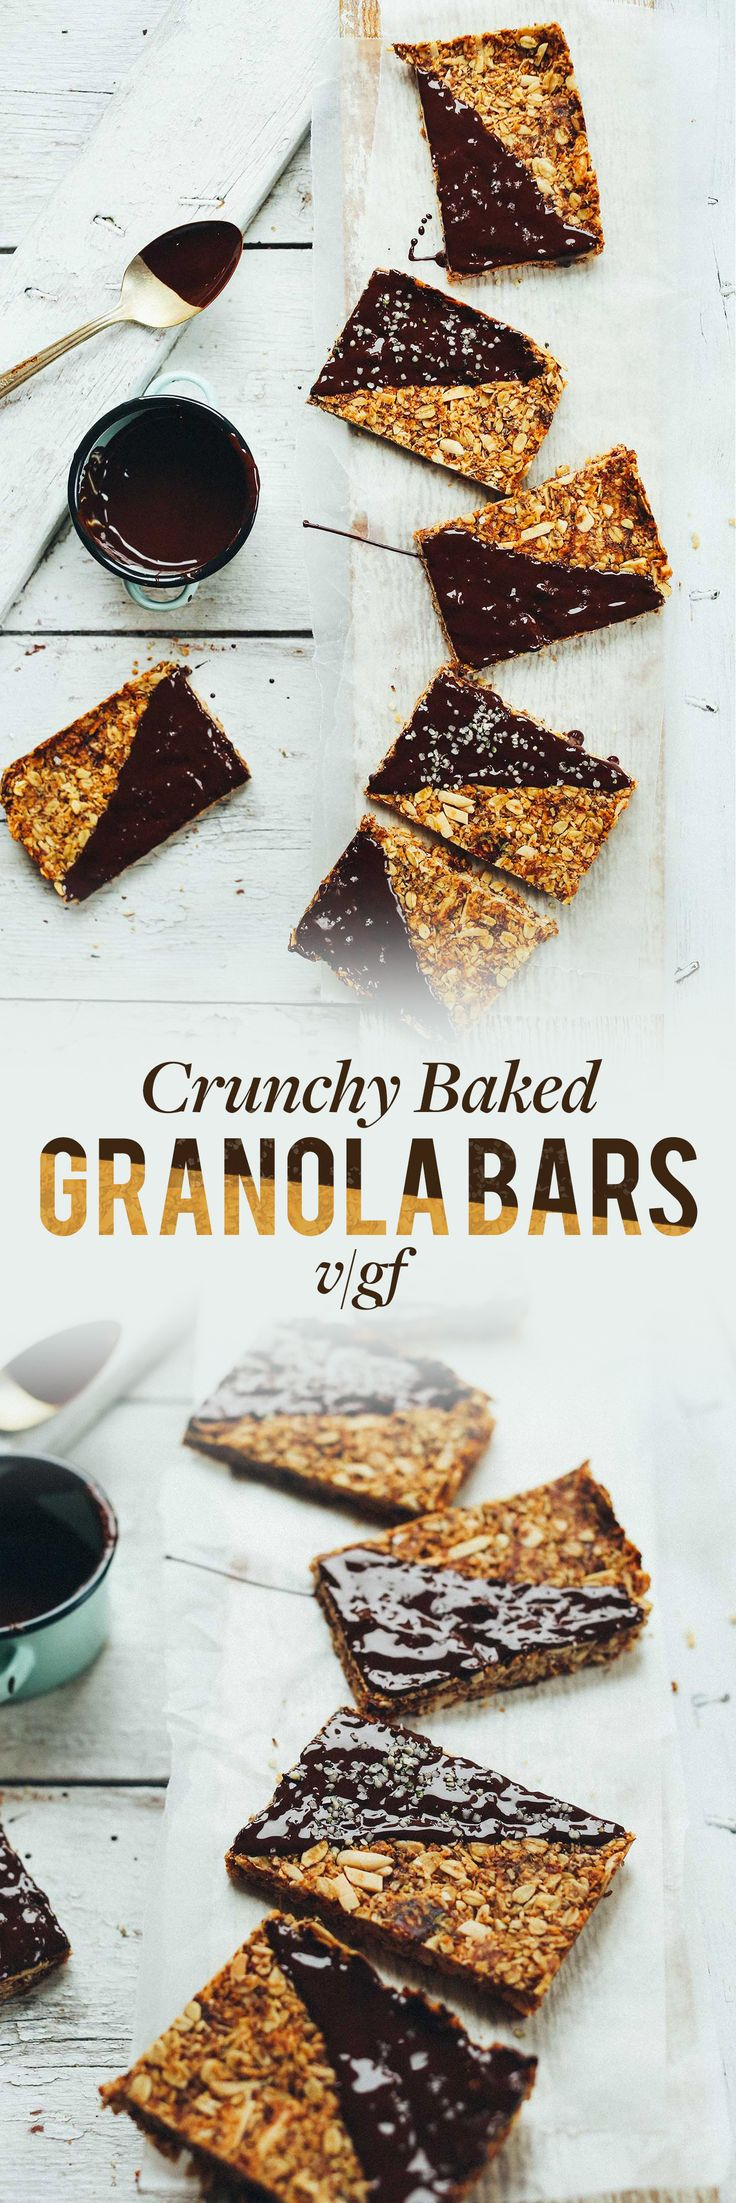 THE BEST Crunchy Baked Granola Bars! Naturally sweetened, 9 basic ingredients, SO delicious! #vegan #glutenfree - Minimalist Baker